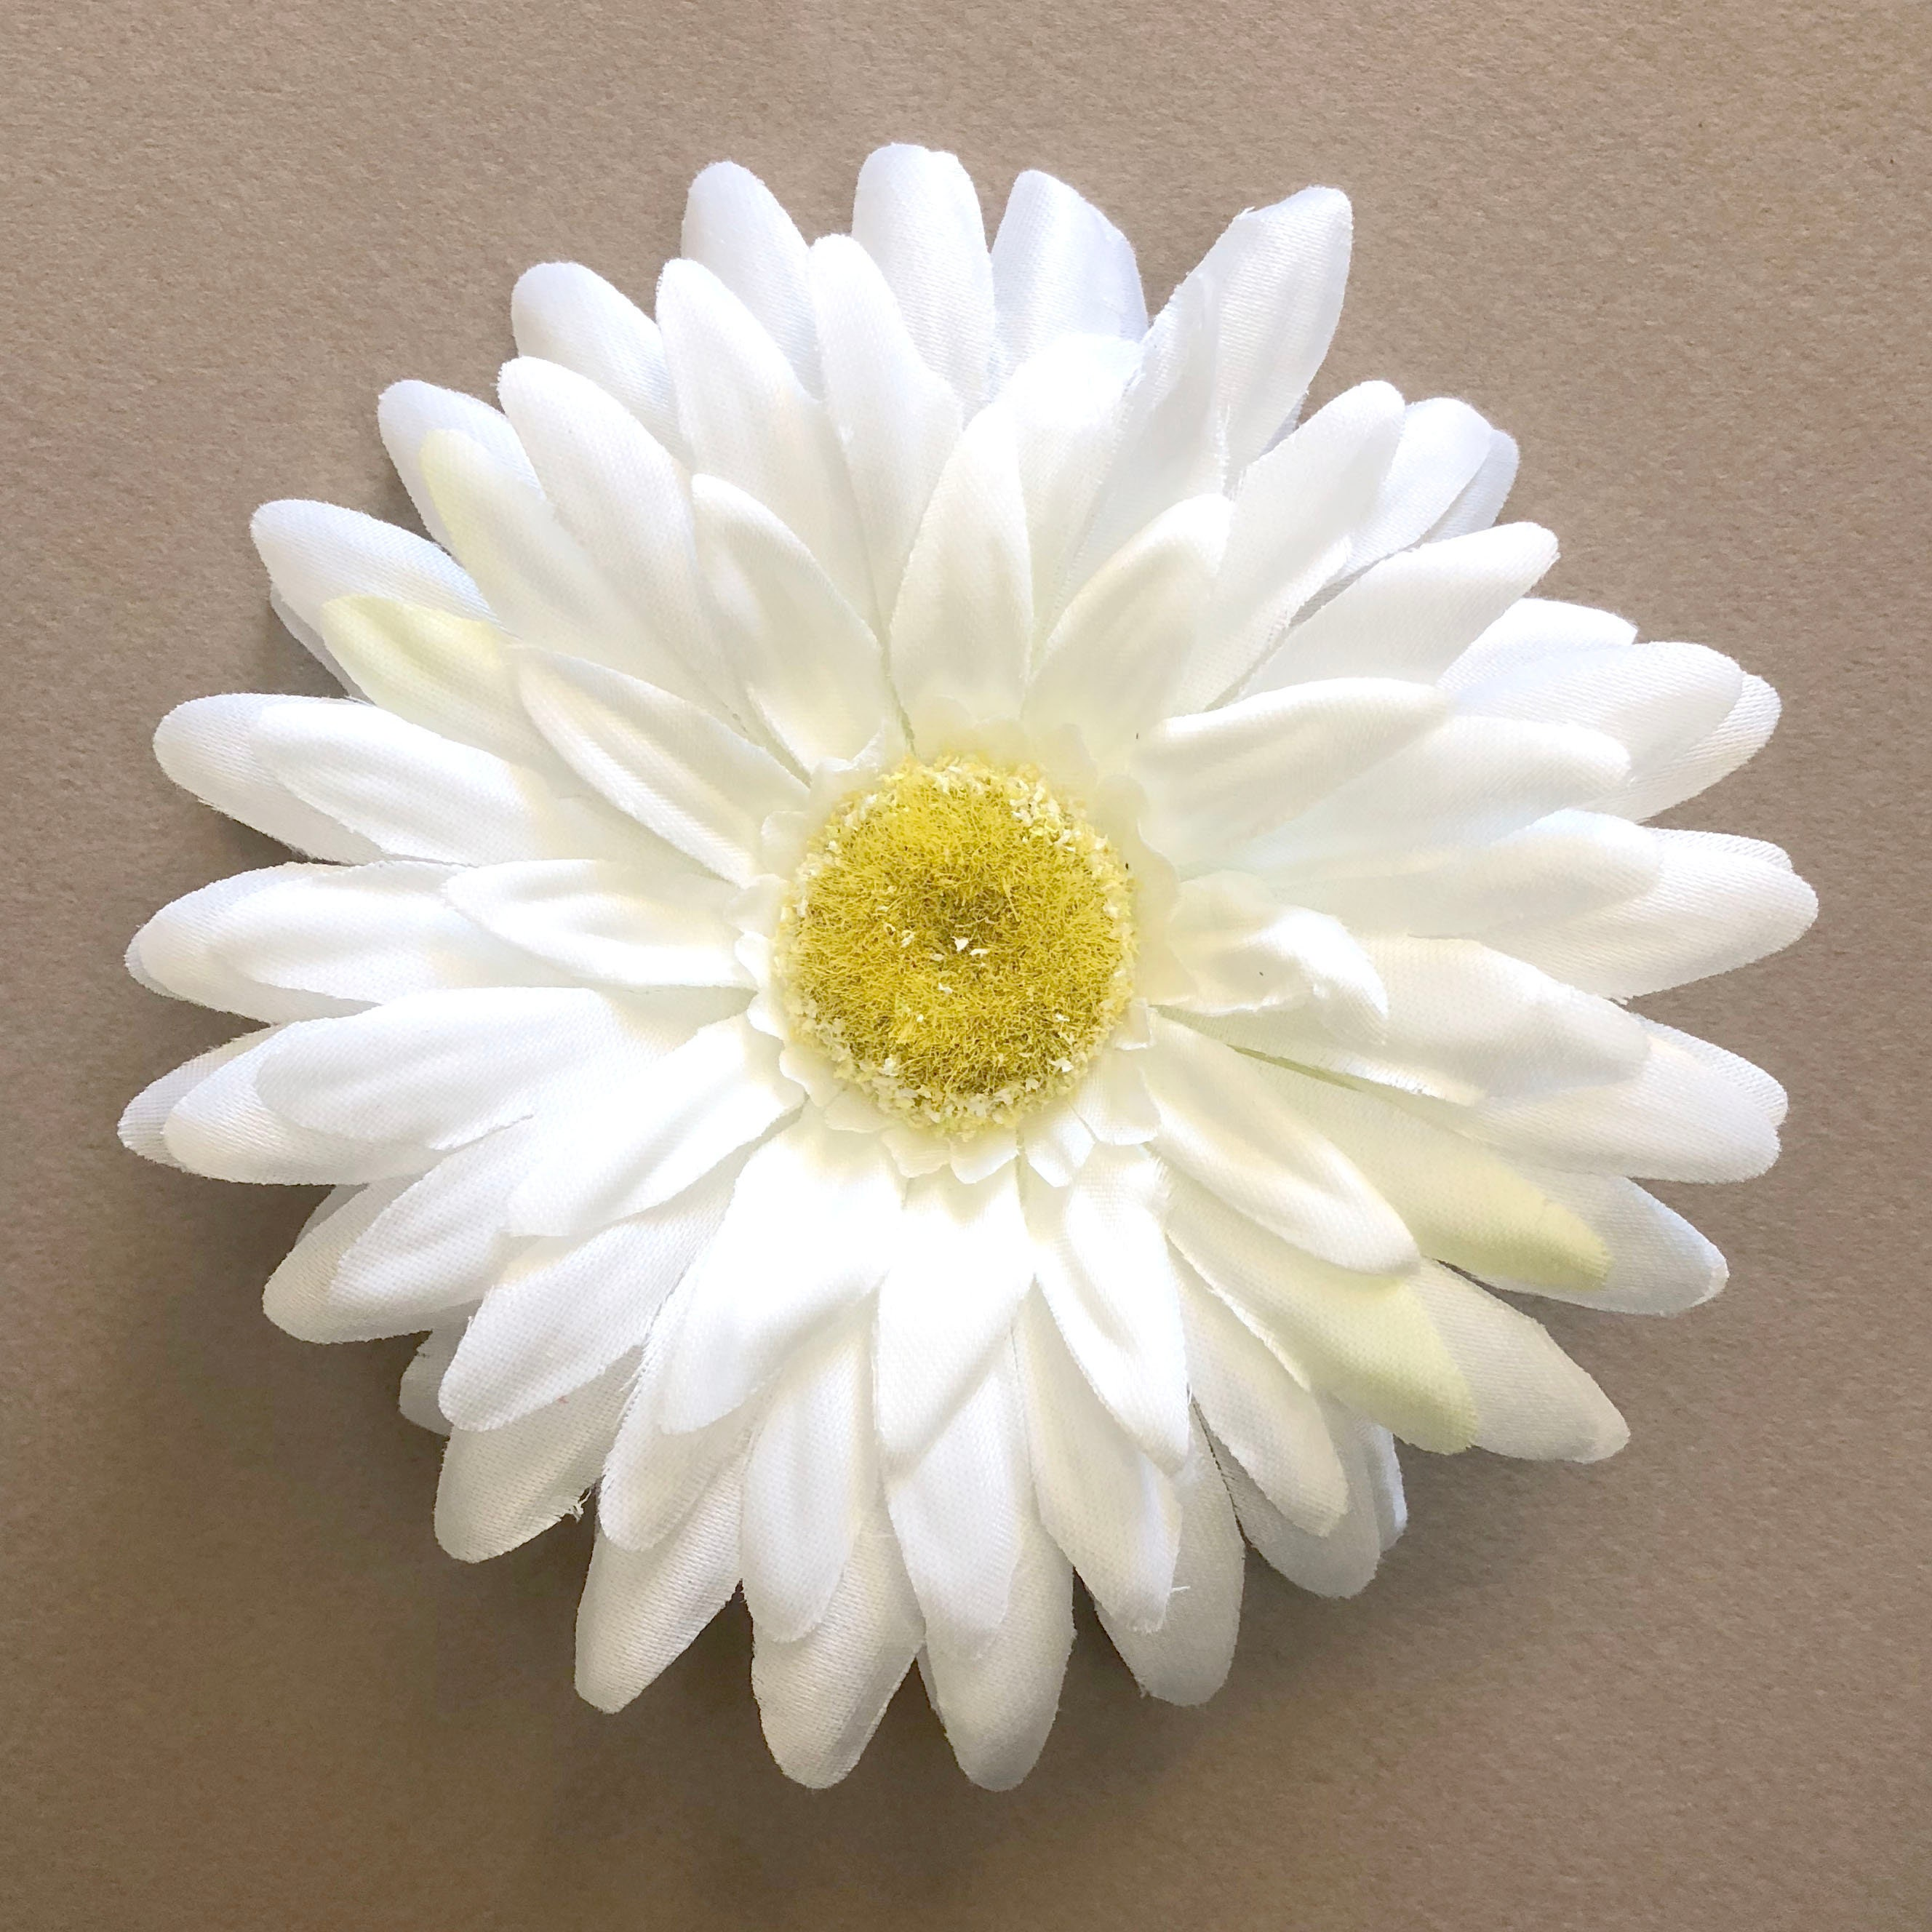 White Gerbera Daisy Yellow Highlights Artificial Flowers Etsy